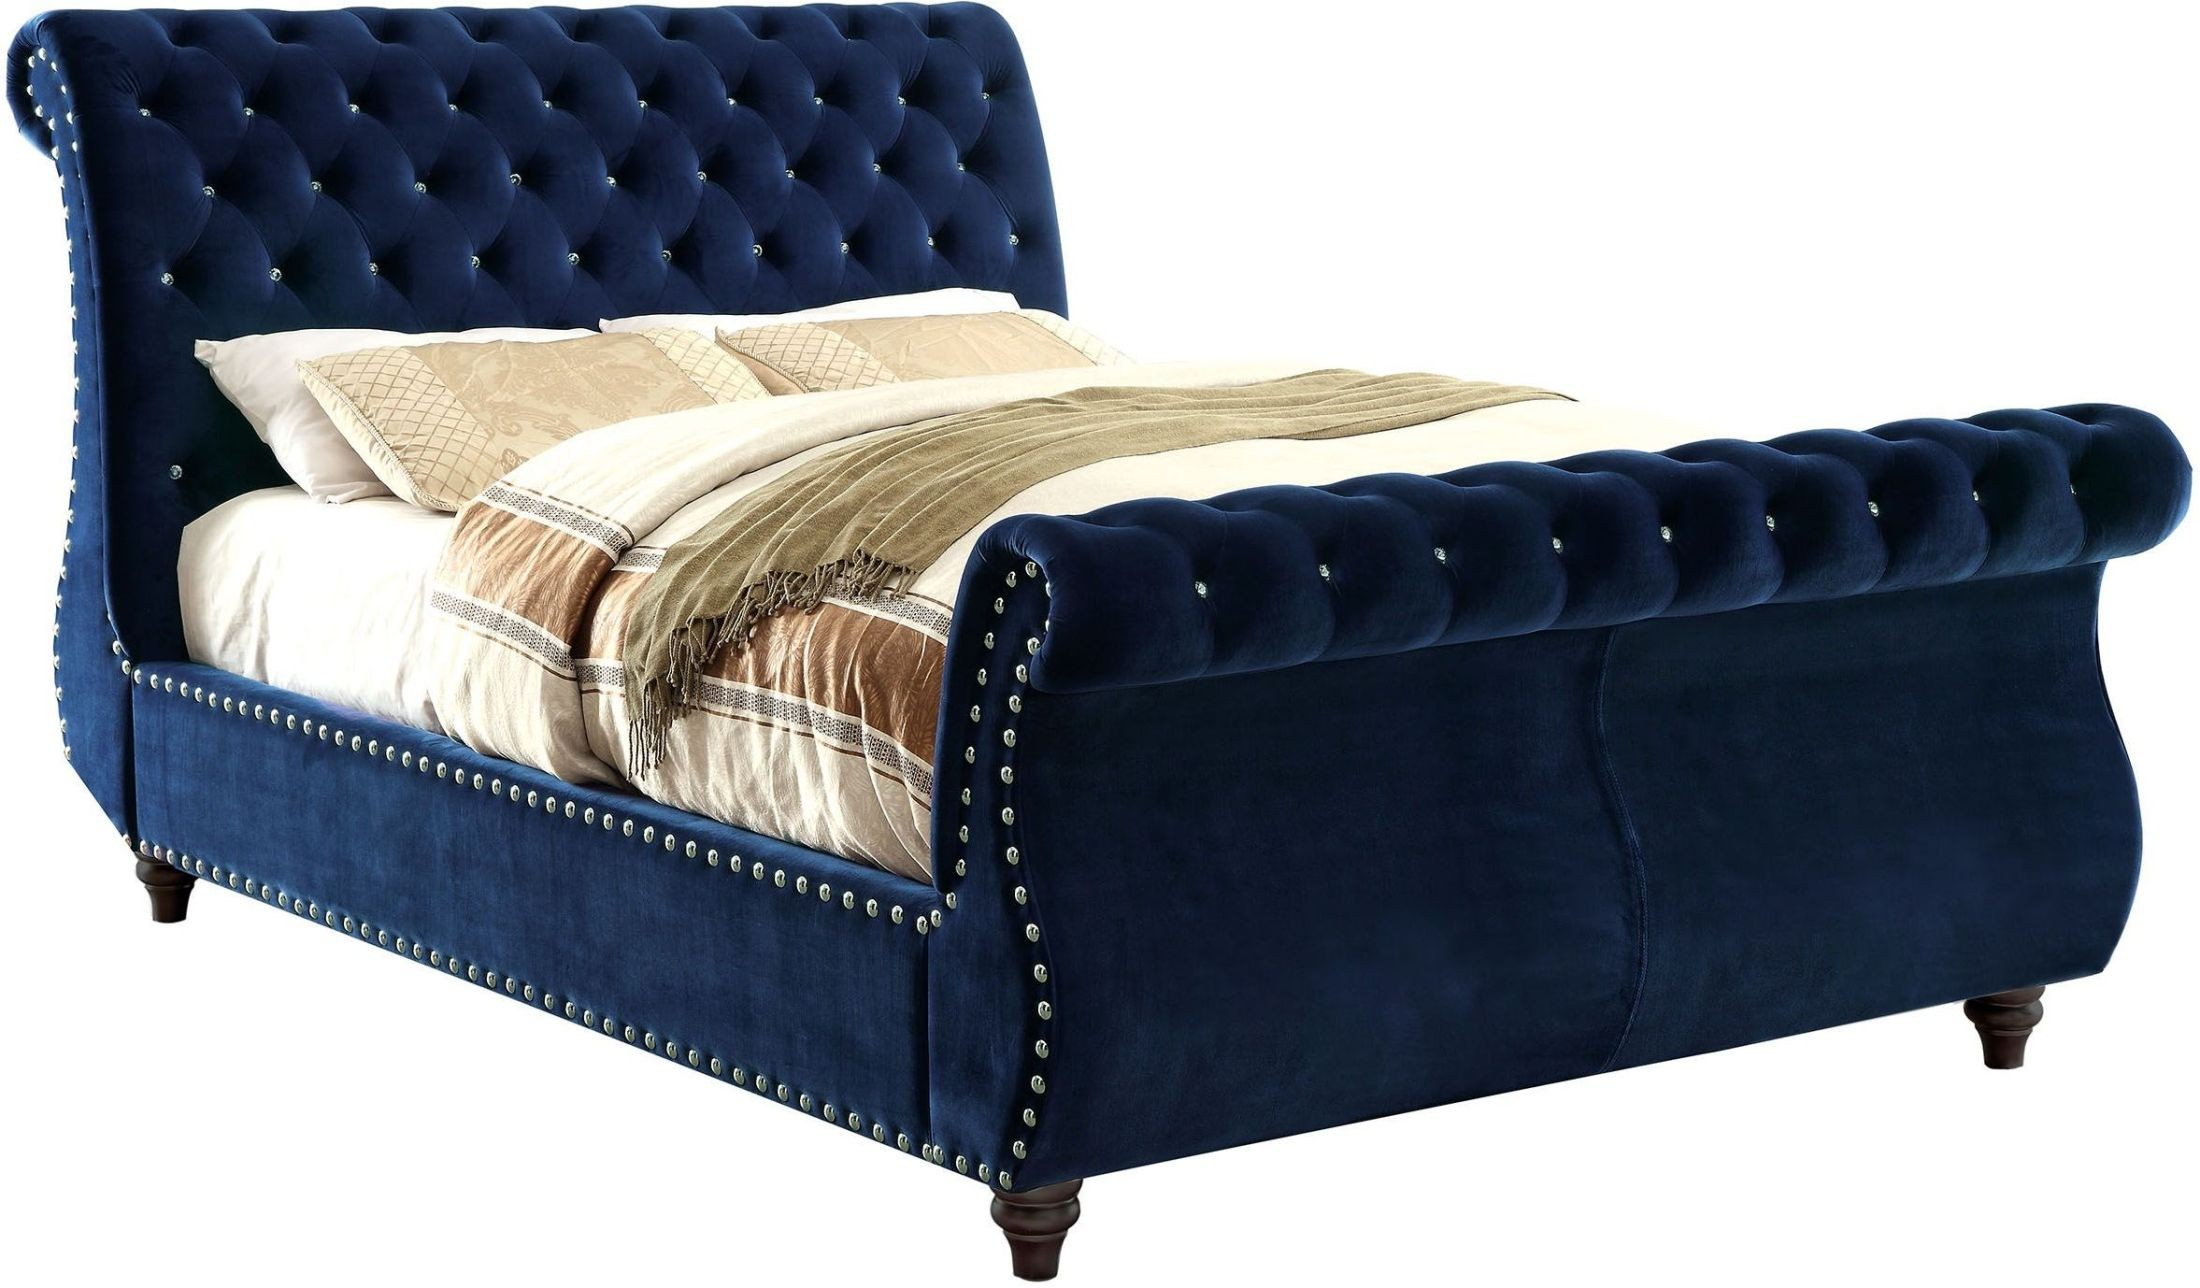 noella navy cal king upholstered sleigh bed cm7128nv ck furniture of america. Black Bedroom Furniture Sets. Home Design Ideas